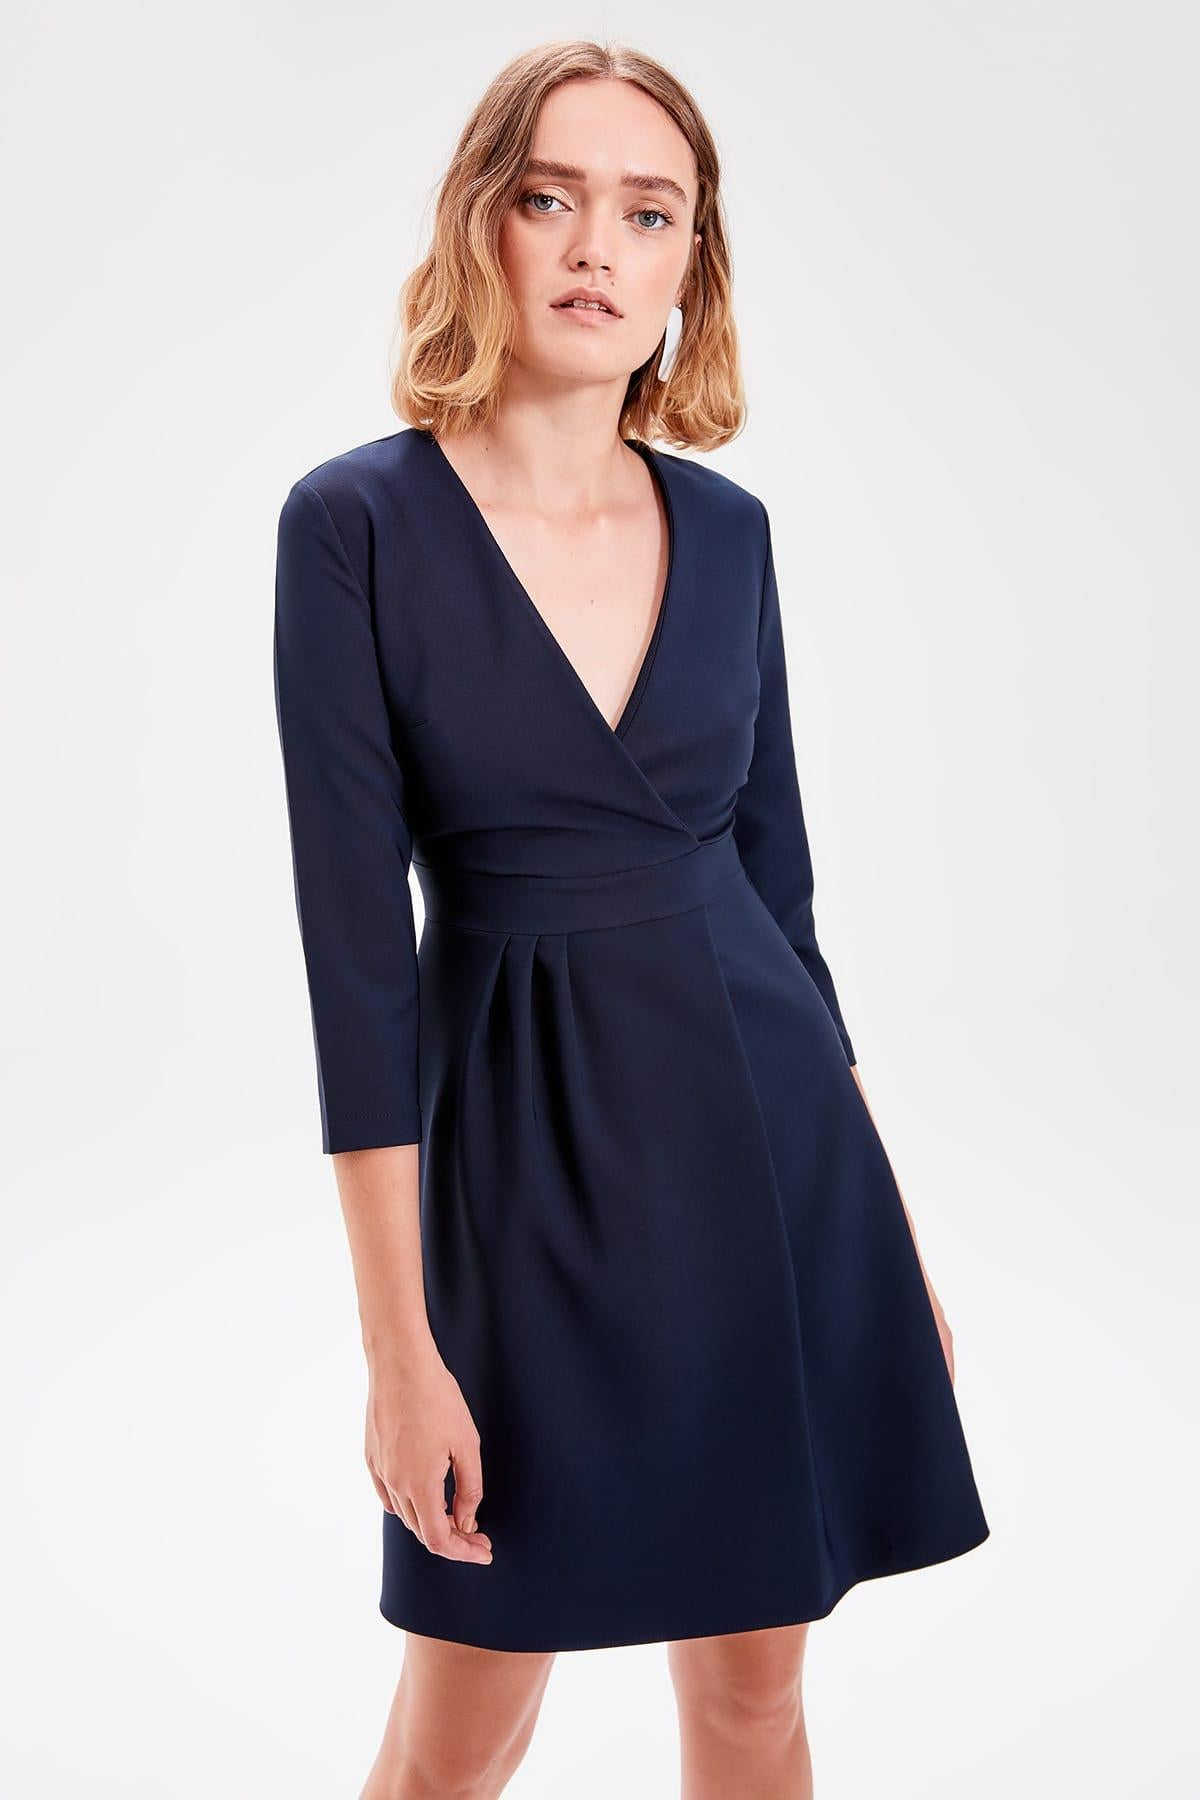 Navy Blue Double Breasted Dress